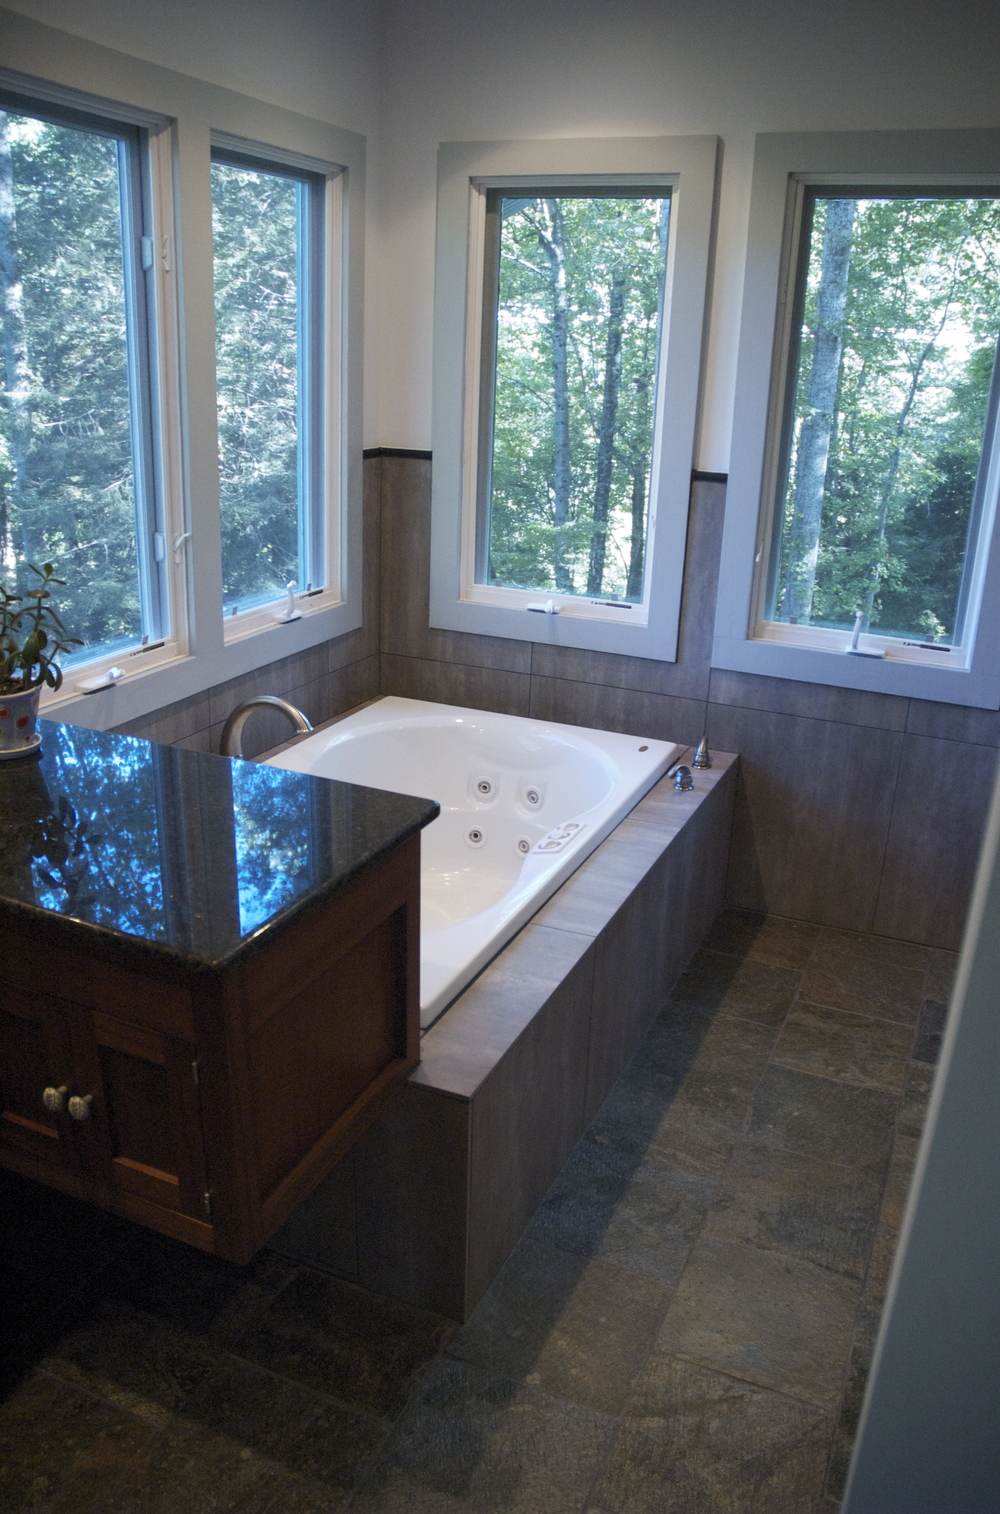 Wheeler Residence. This jet tub is surrounded by a very modern smooth porcelain tile that is contrasted as well as complimented by the natural slate tile floor. This bathroom is an oasis in a rustic setting.